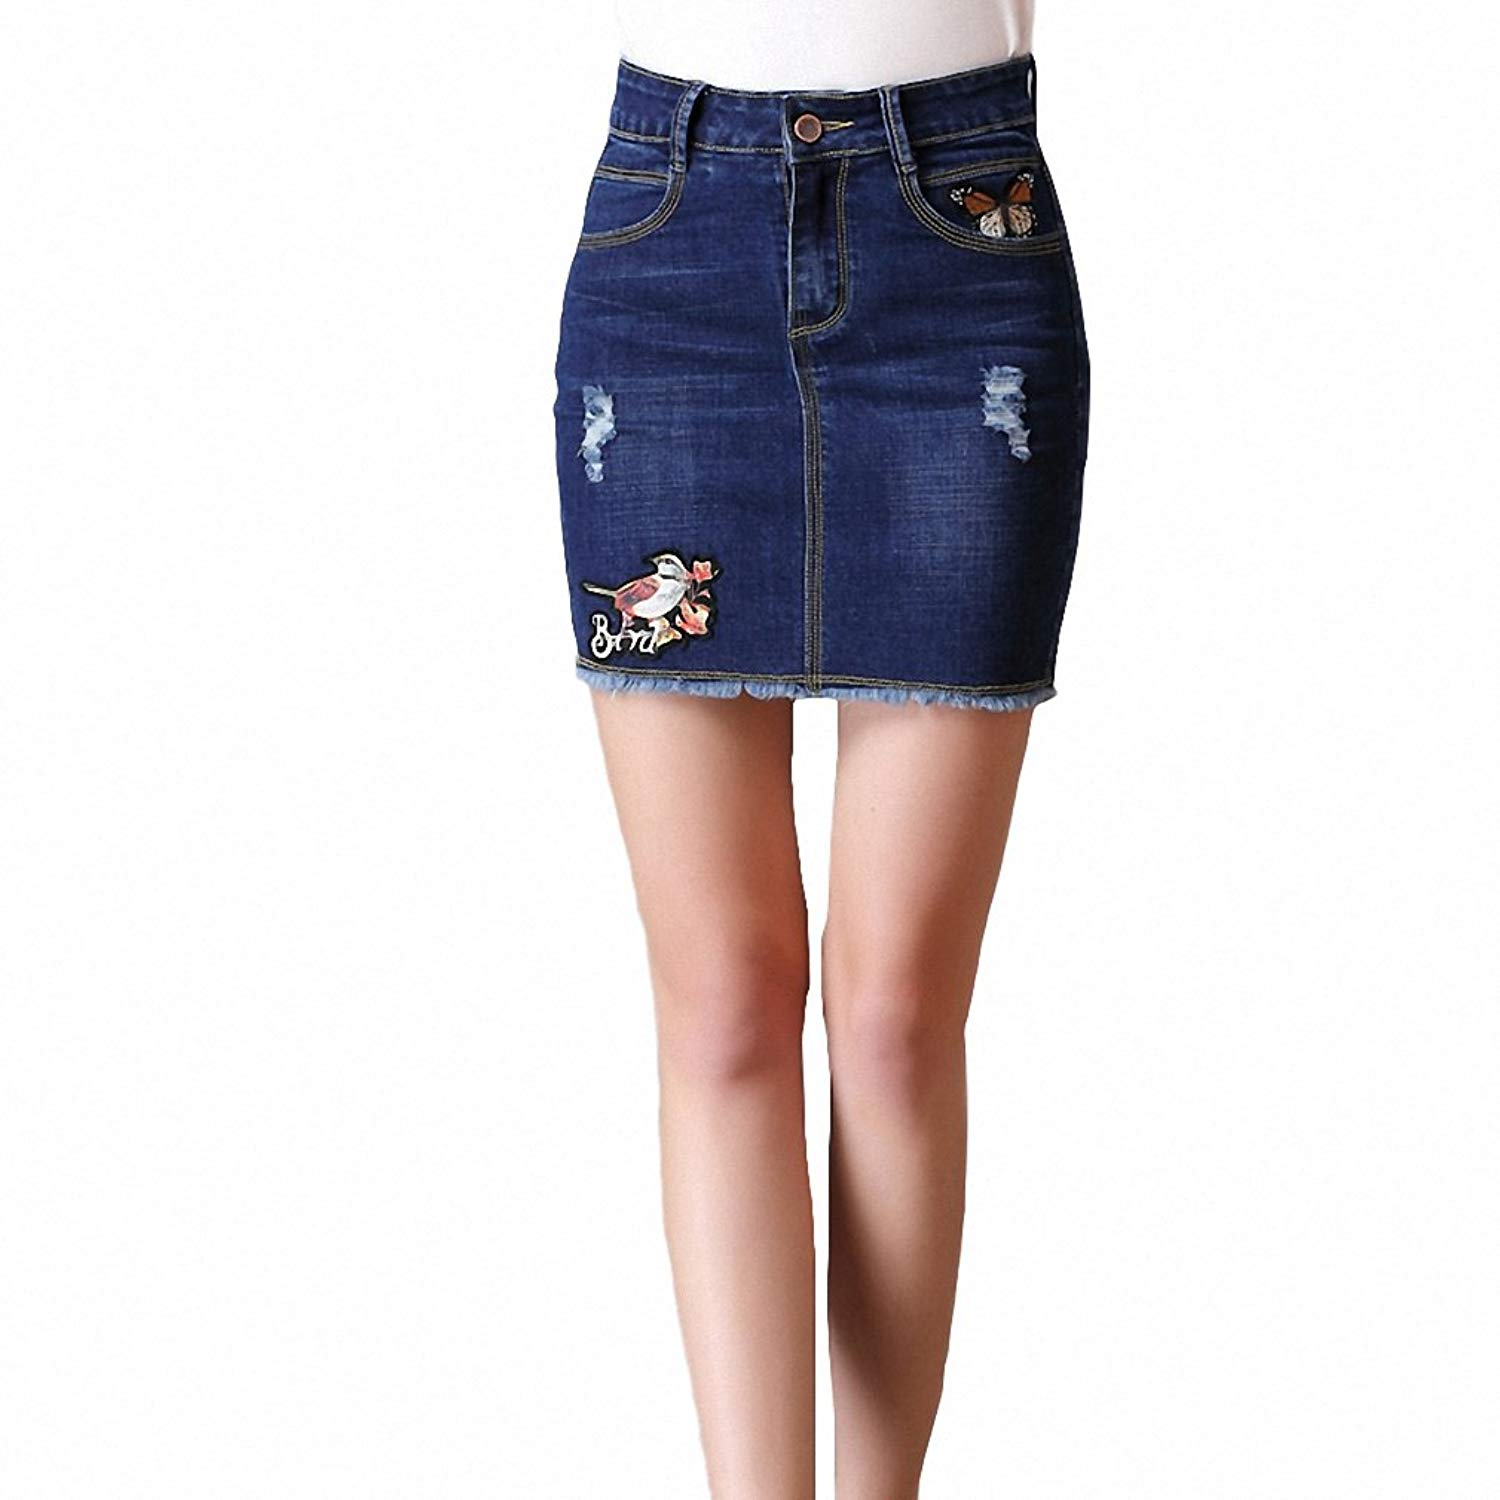 33bf2dce4a Women Denim Pencil Skirt NEW Summer Ladies Butterfly Embroidery Ripped Jeans  Skirts High Waist Short Mini